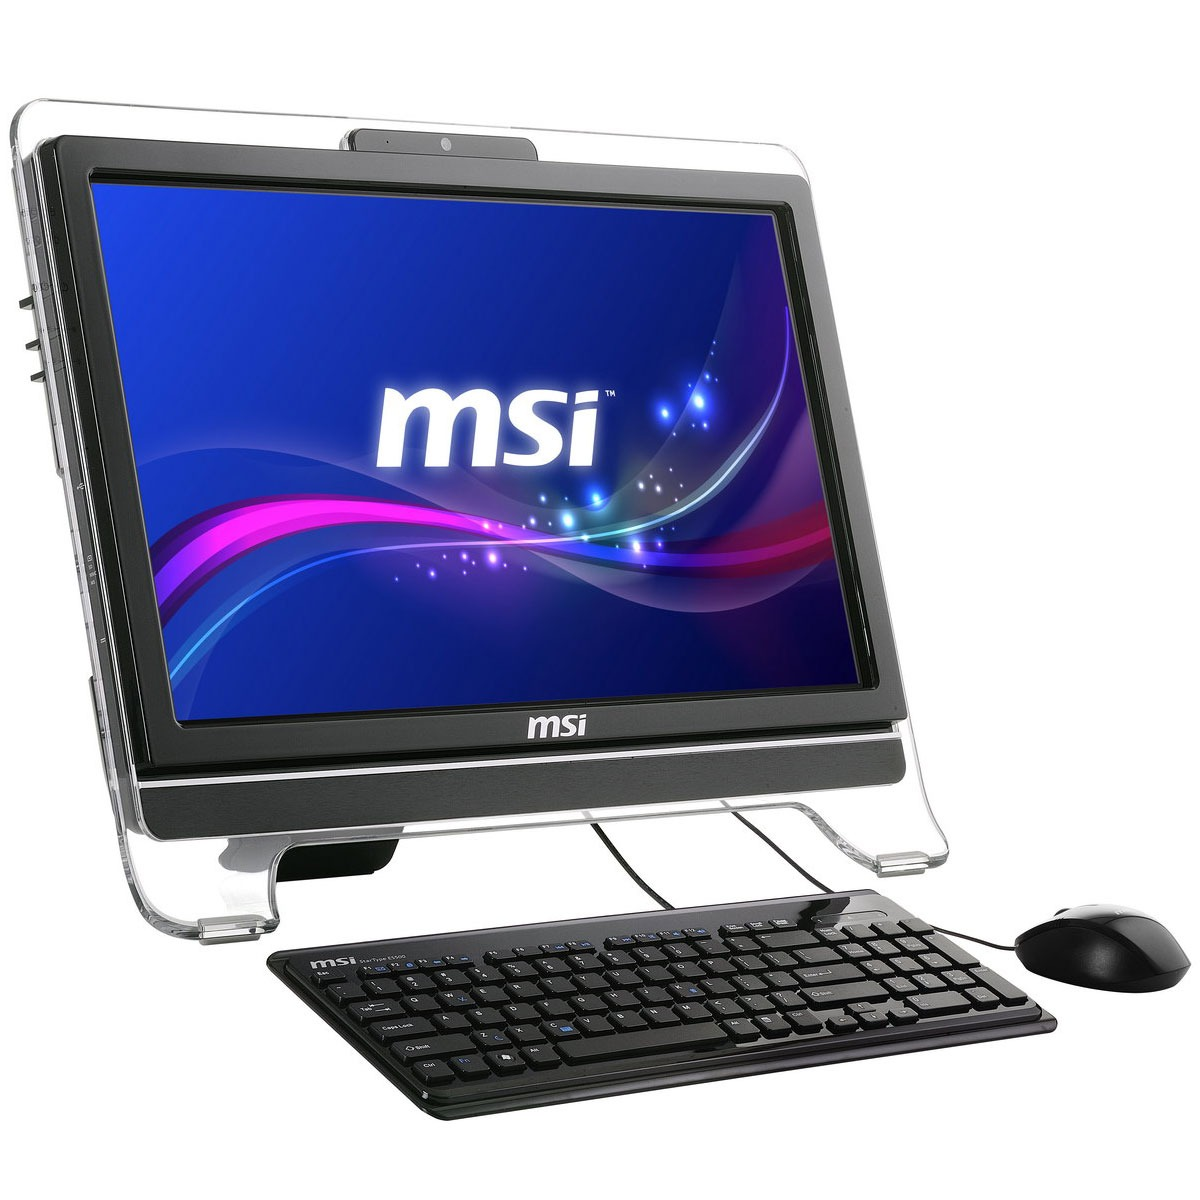 msi wind top ae2050 002 noir pc de bureau msi sur ldlc. Black Bedroom Furniture Sets. Home Design Ideas